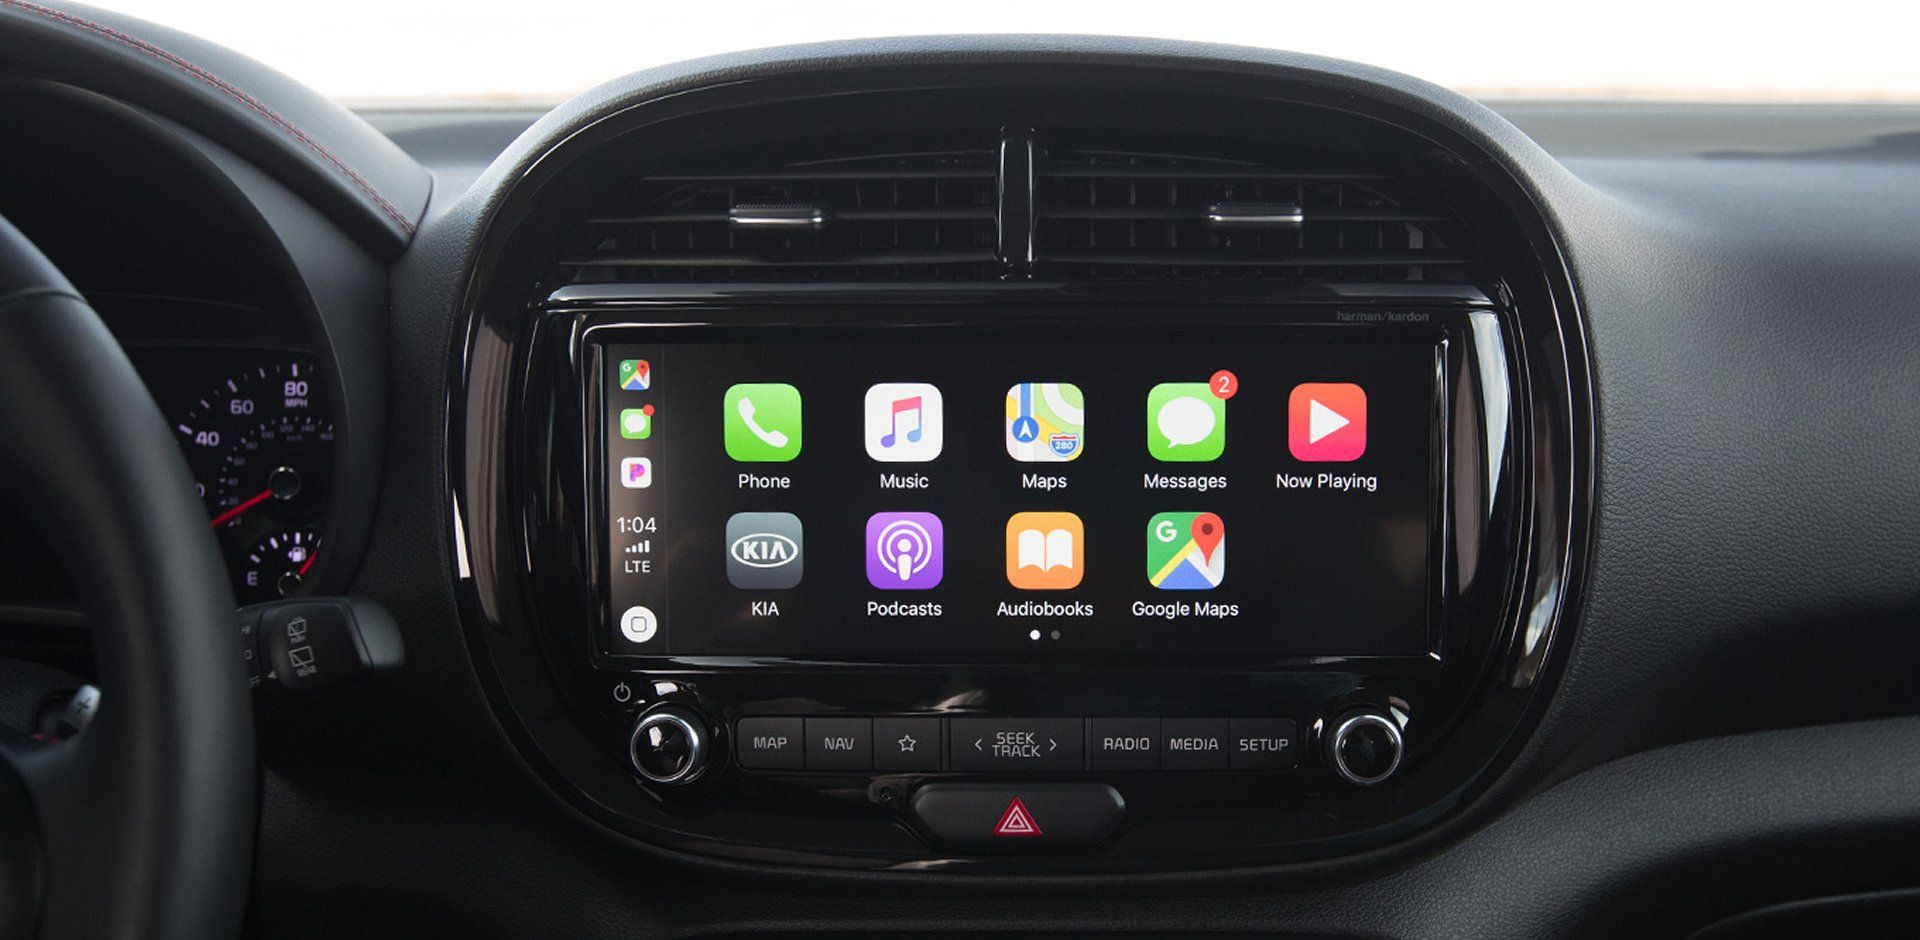 2020 Soul Infotainment System